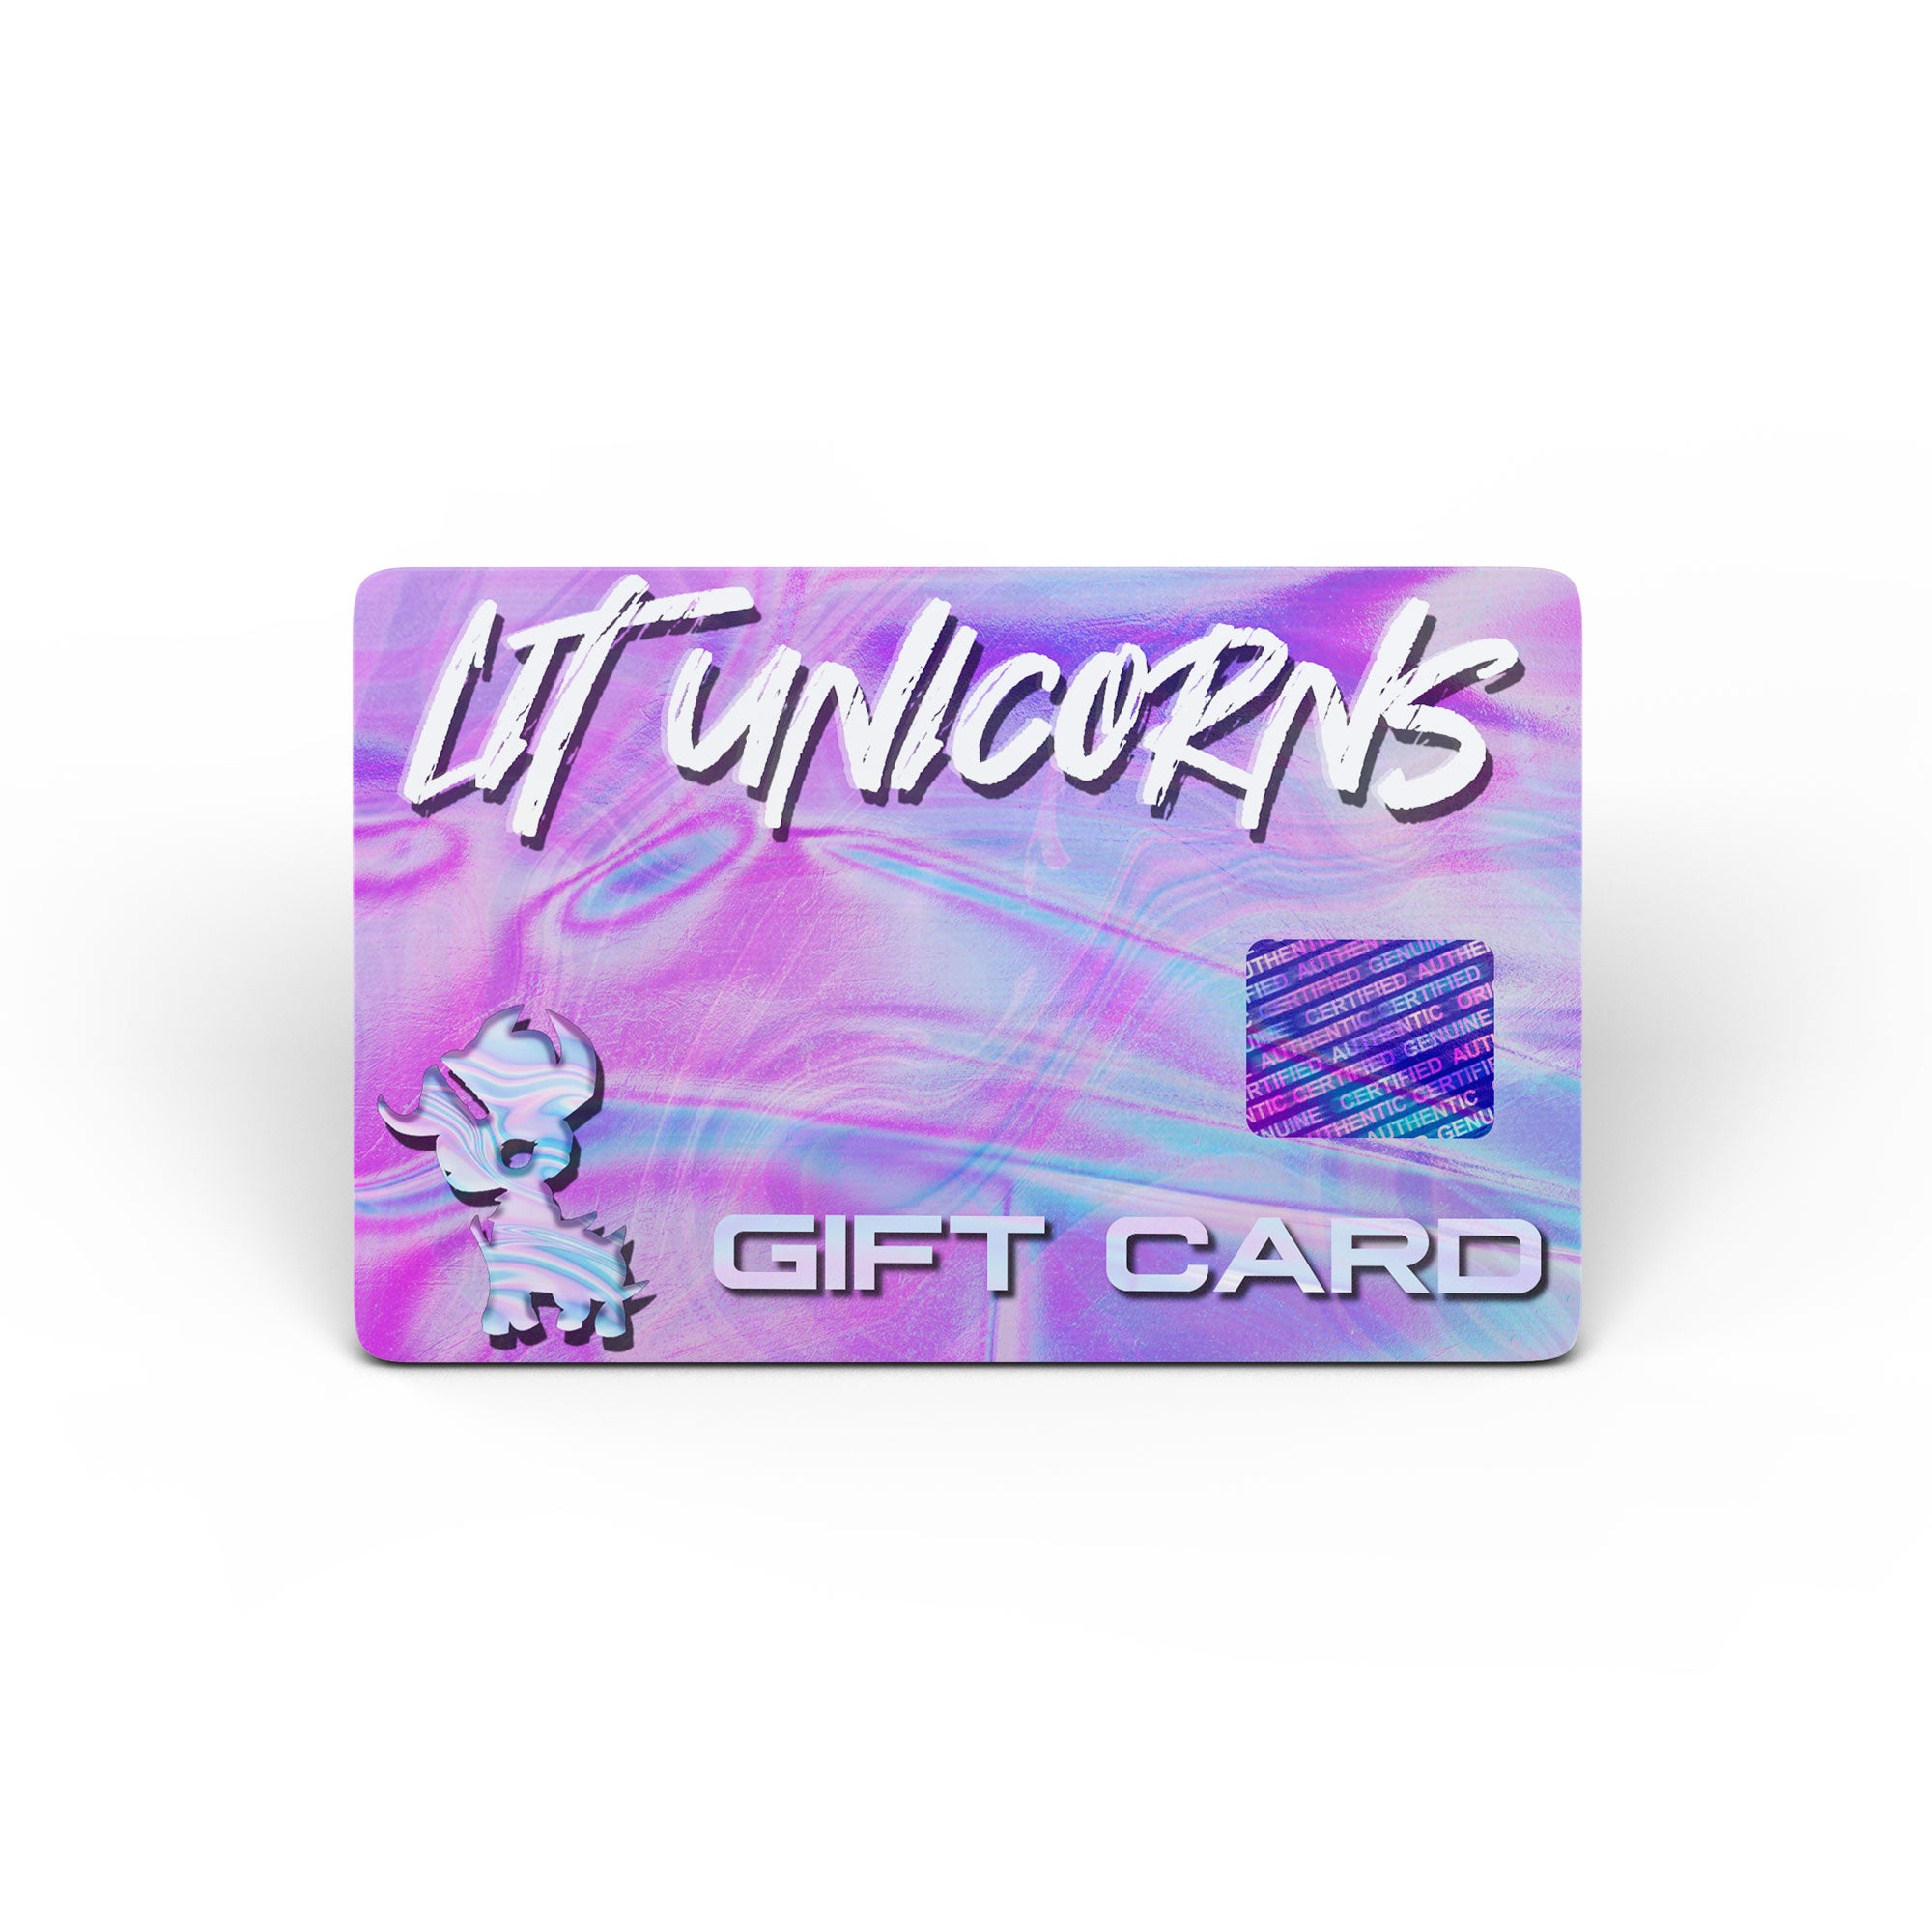 LIT UNICORNS - Gift Card - GIFT CARDS